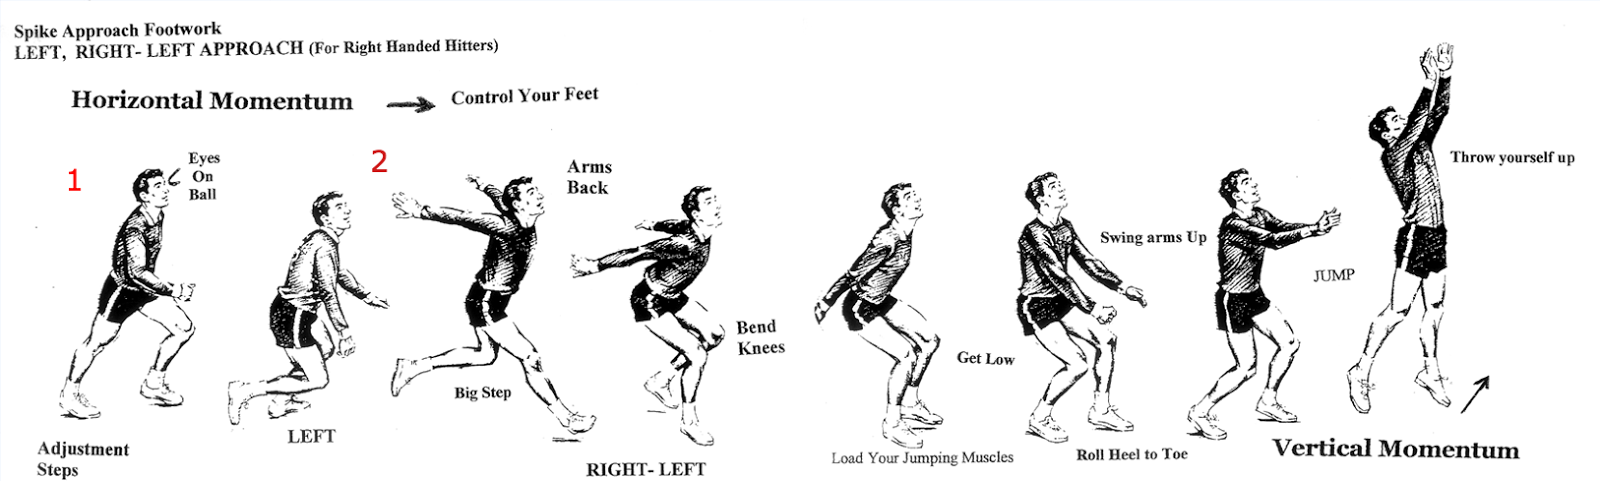 biomechanice in volleyball Biomechanics is the study of the body in a mechanical sense the biomechanics of volleyball refers to the application of this field specifically to the movement in.